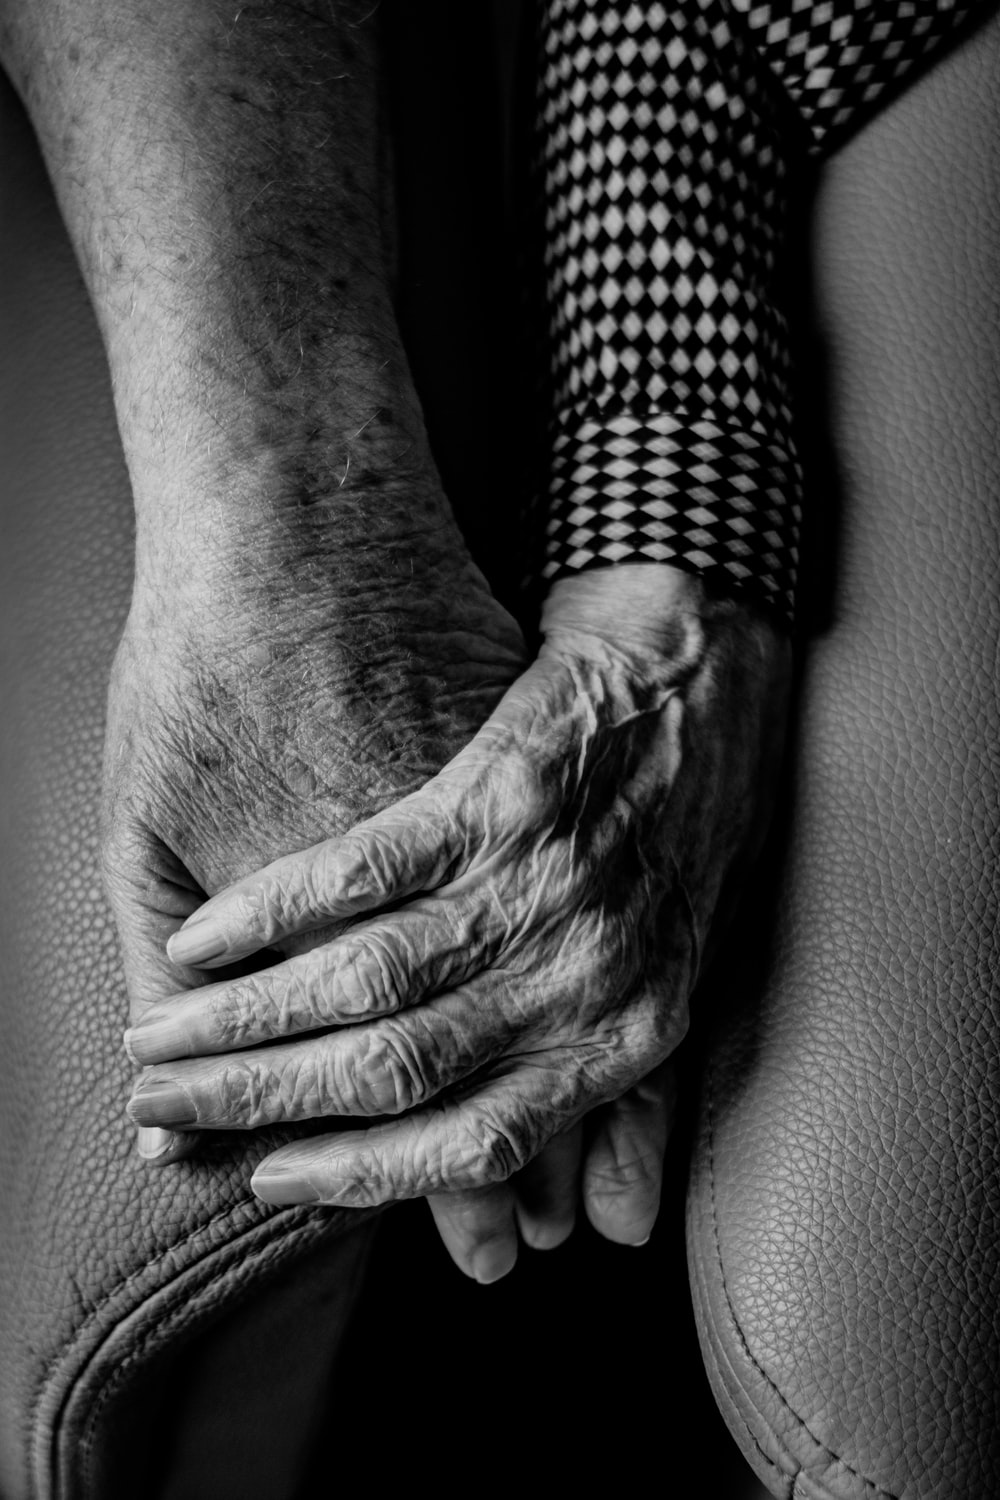 grayscale photography of human hands